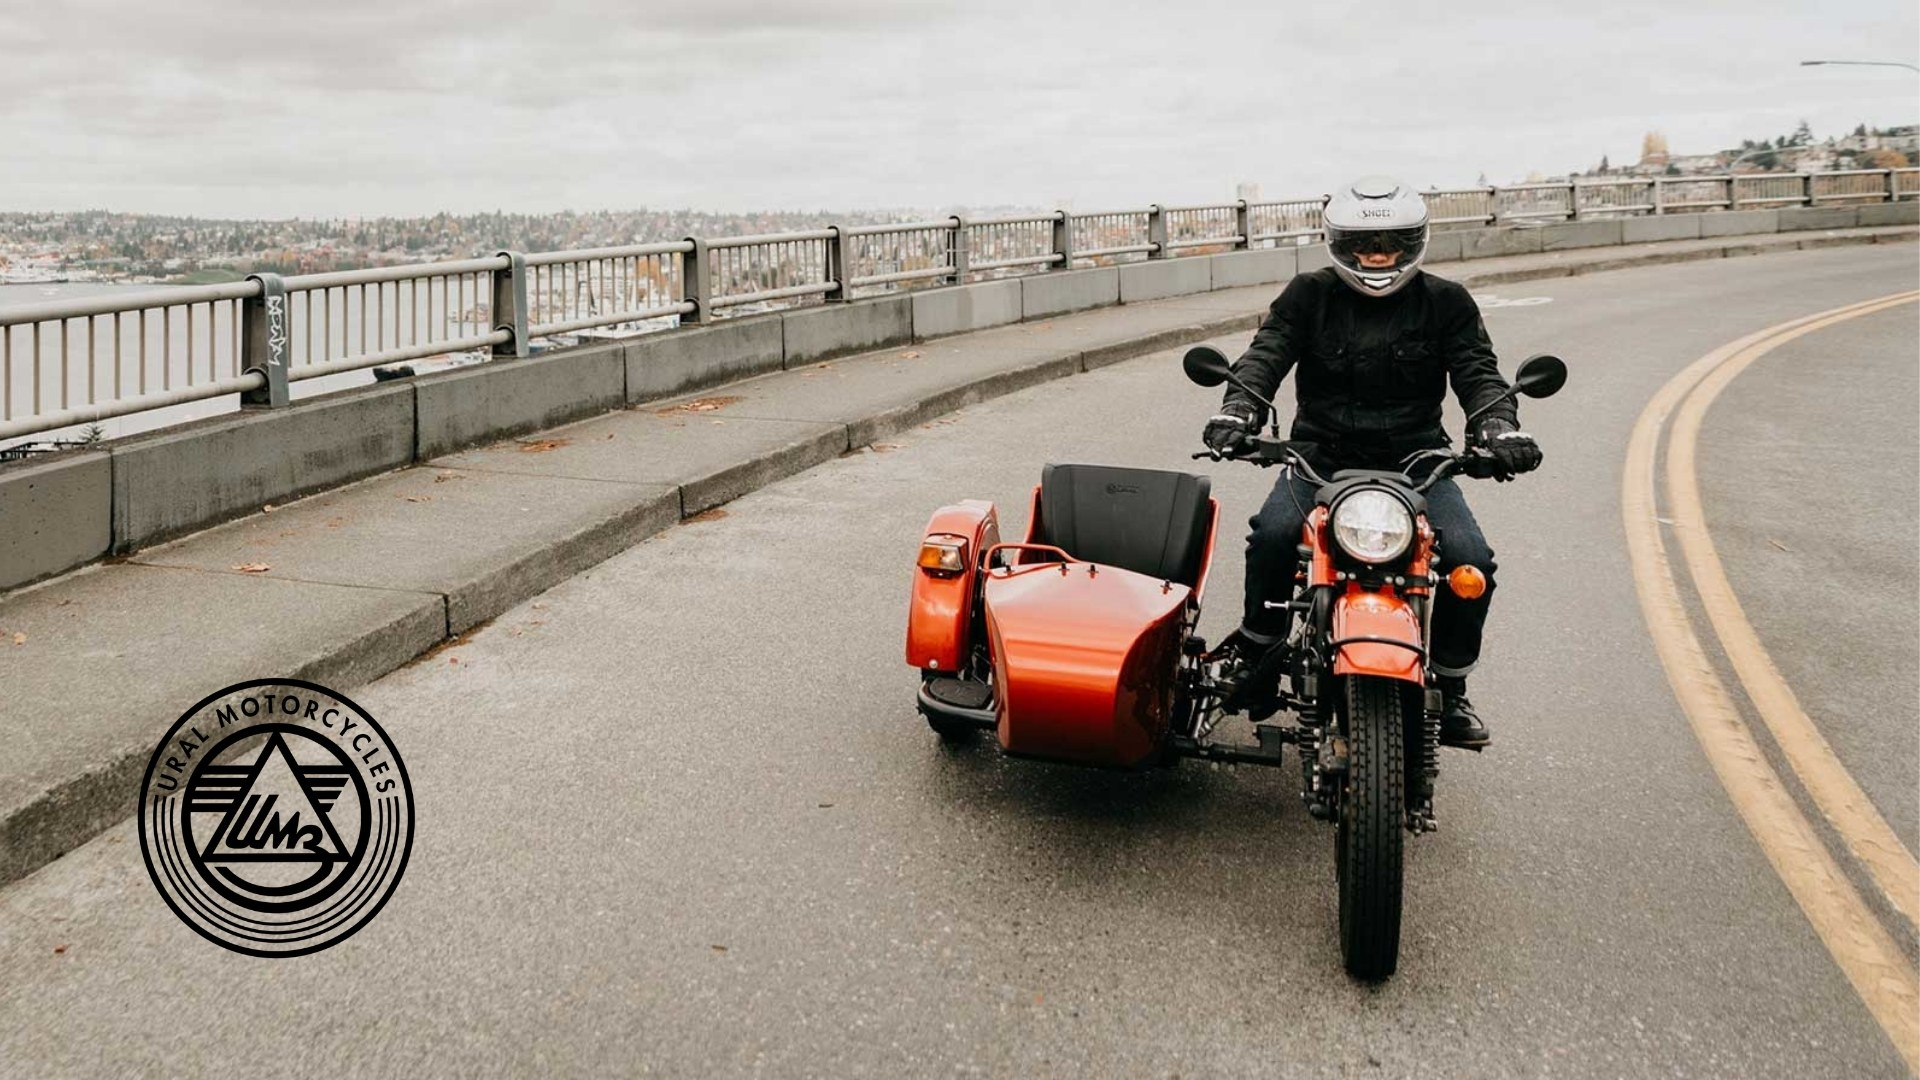 Schedule your Ride on a new 2019 Ural